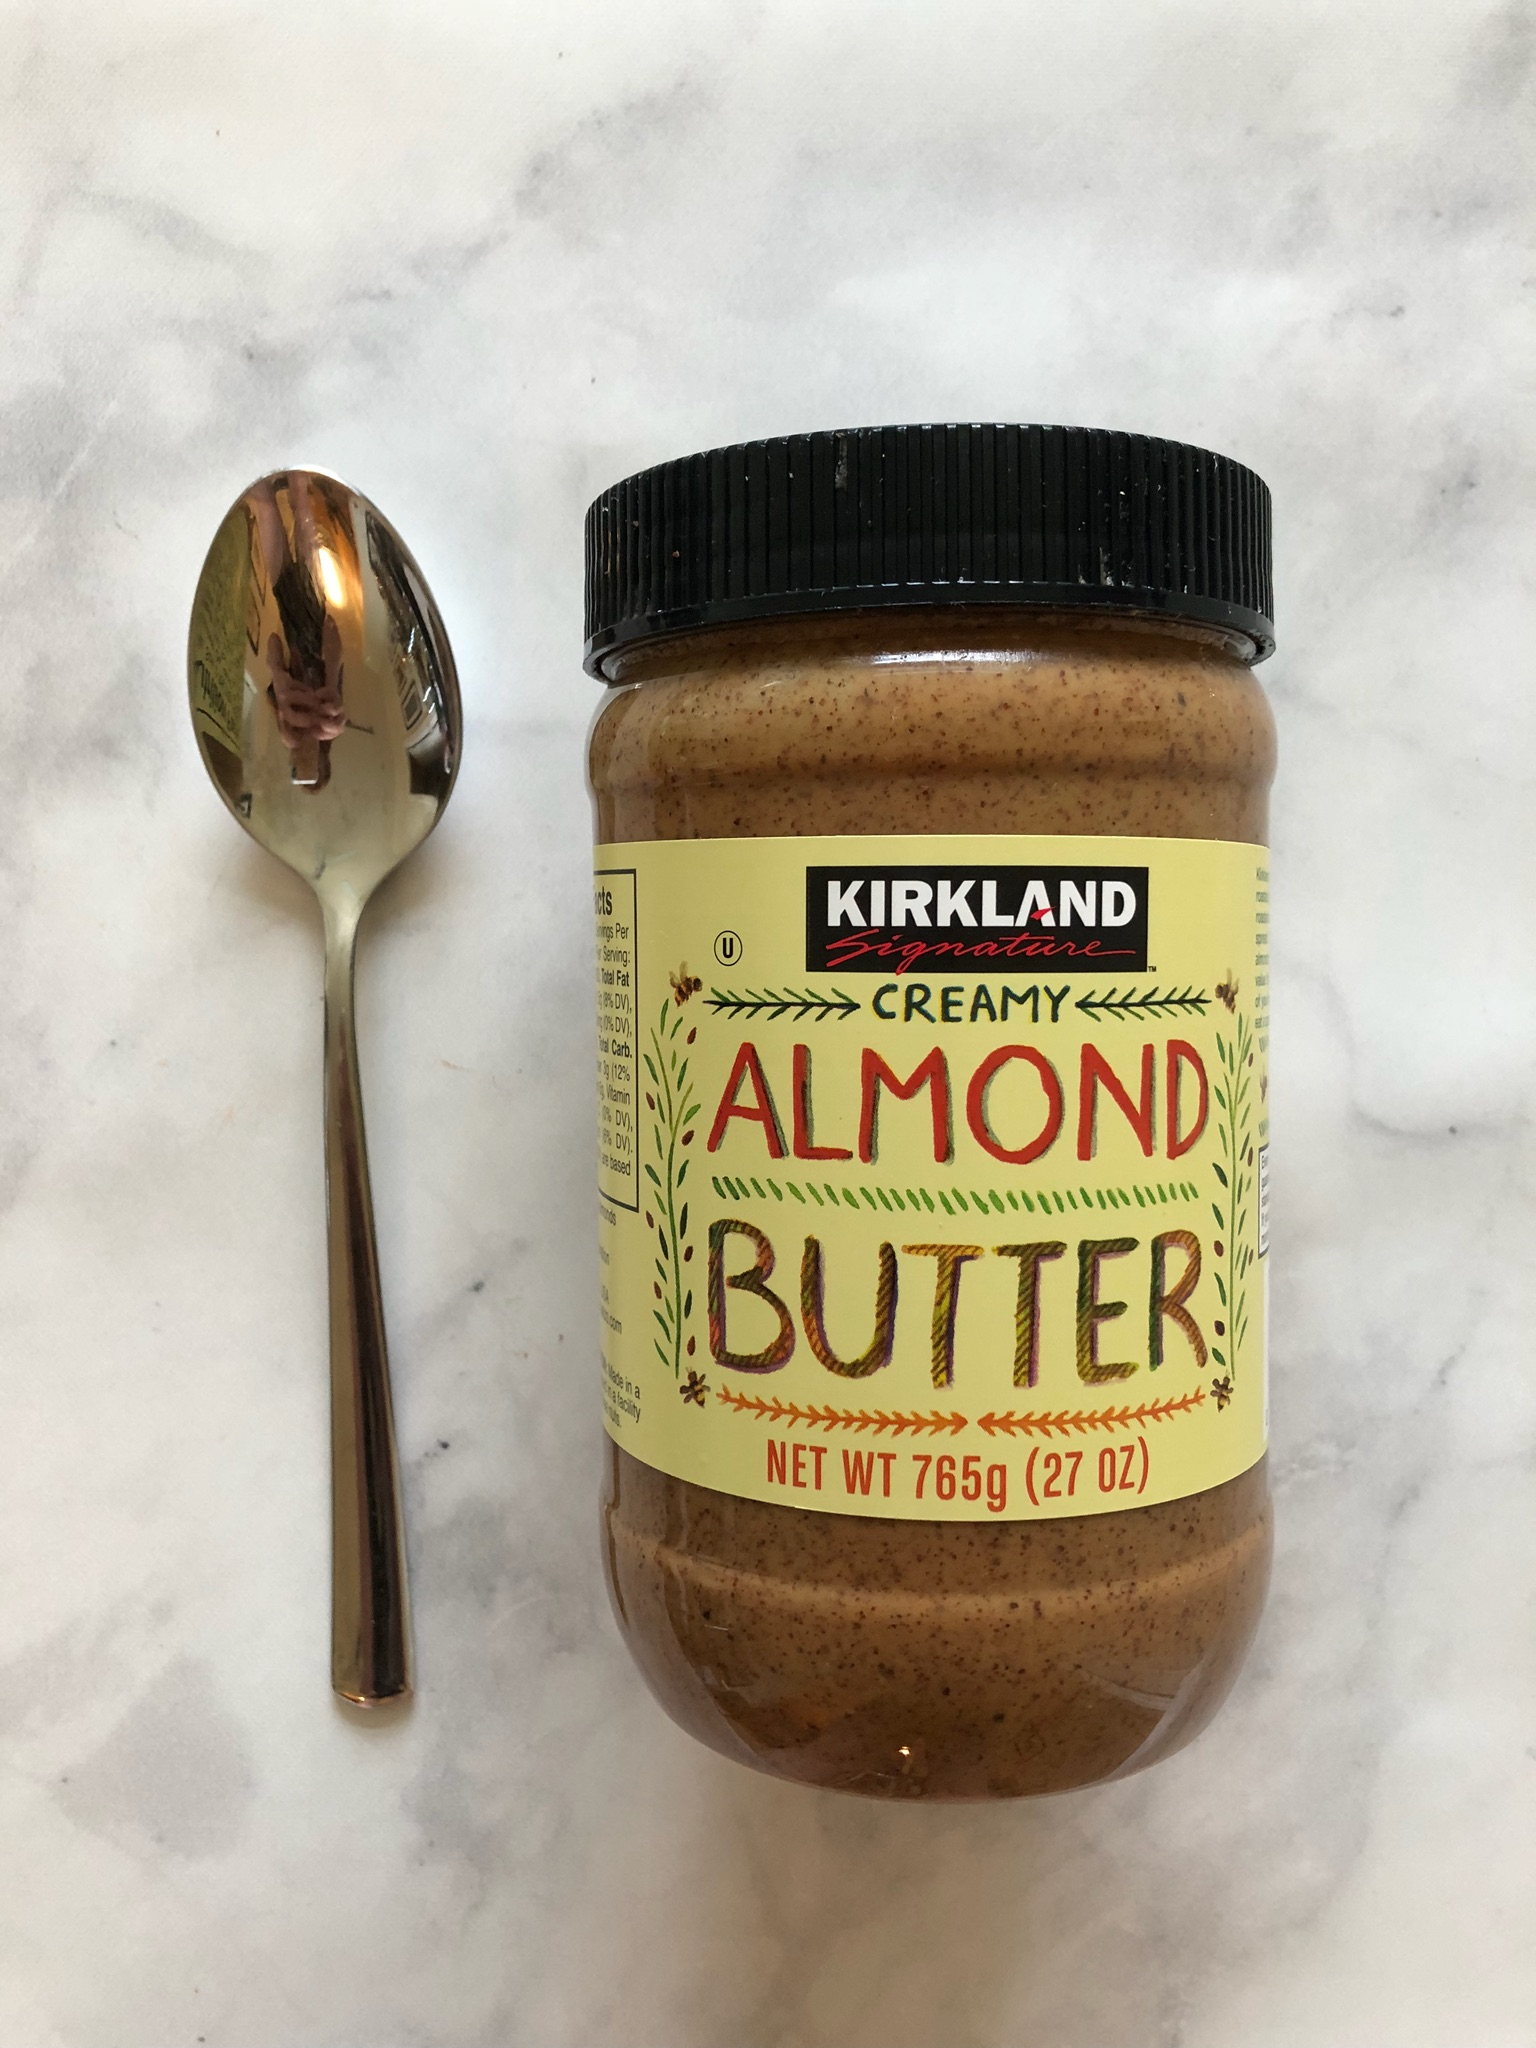 I'll usually start with 2 TBS of Almond Butter